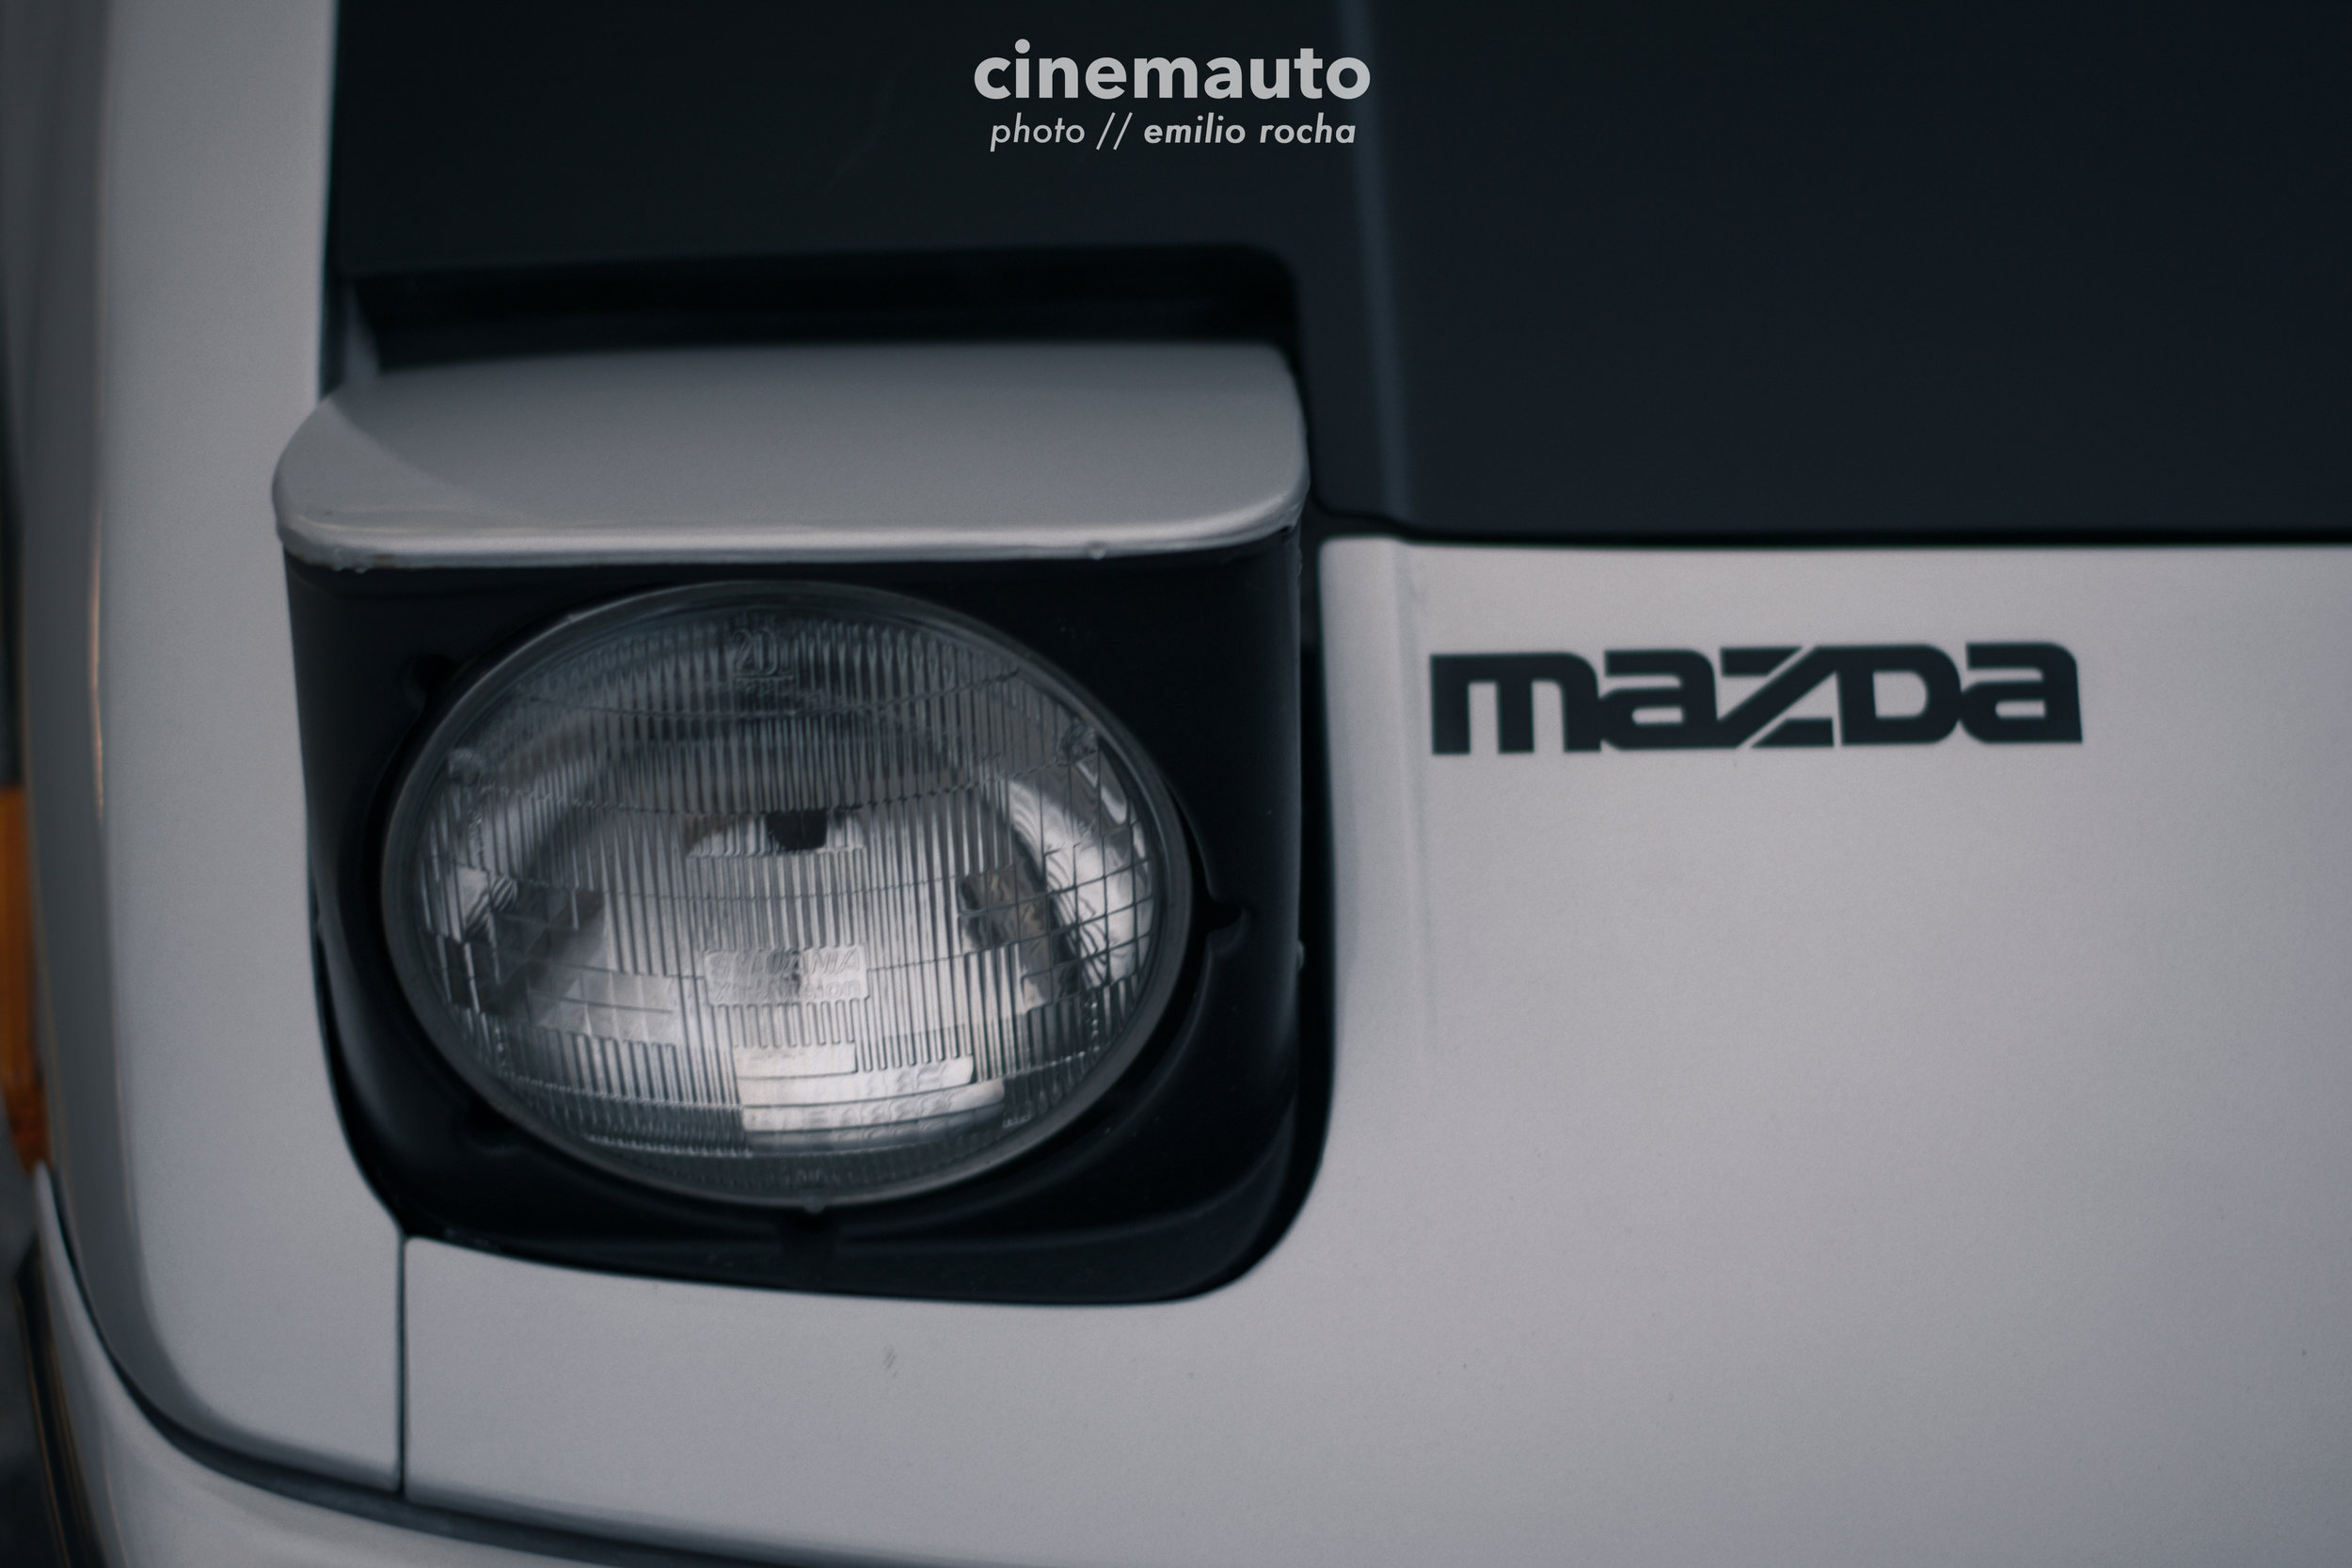 Cinemauto-RX7-23.jpg